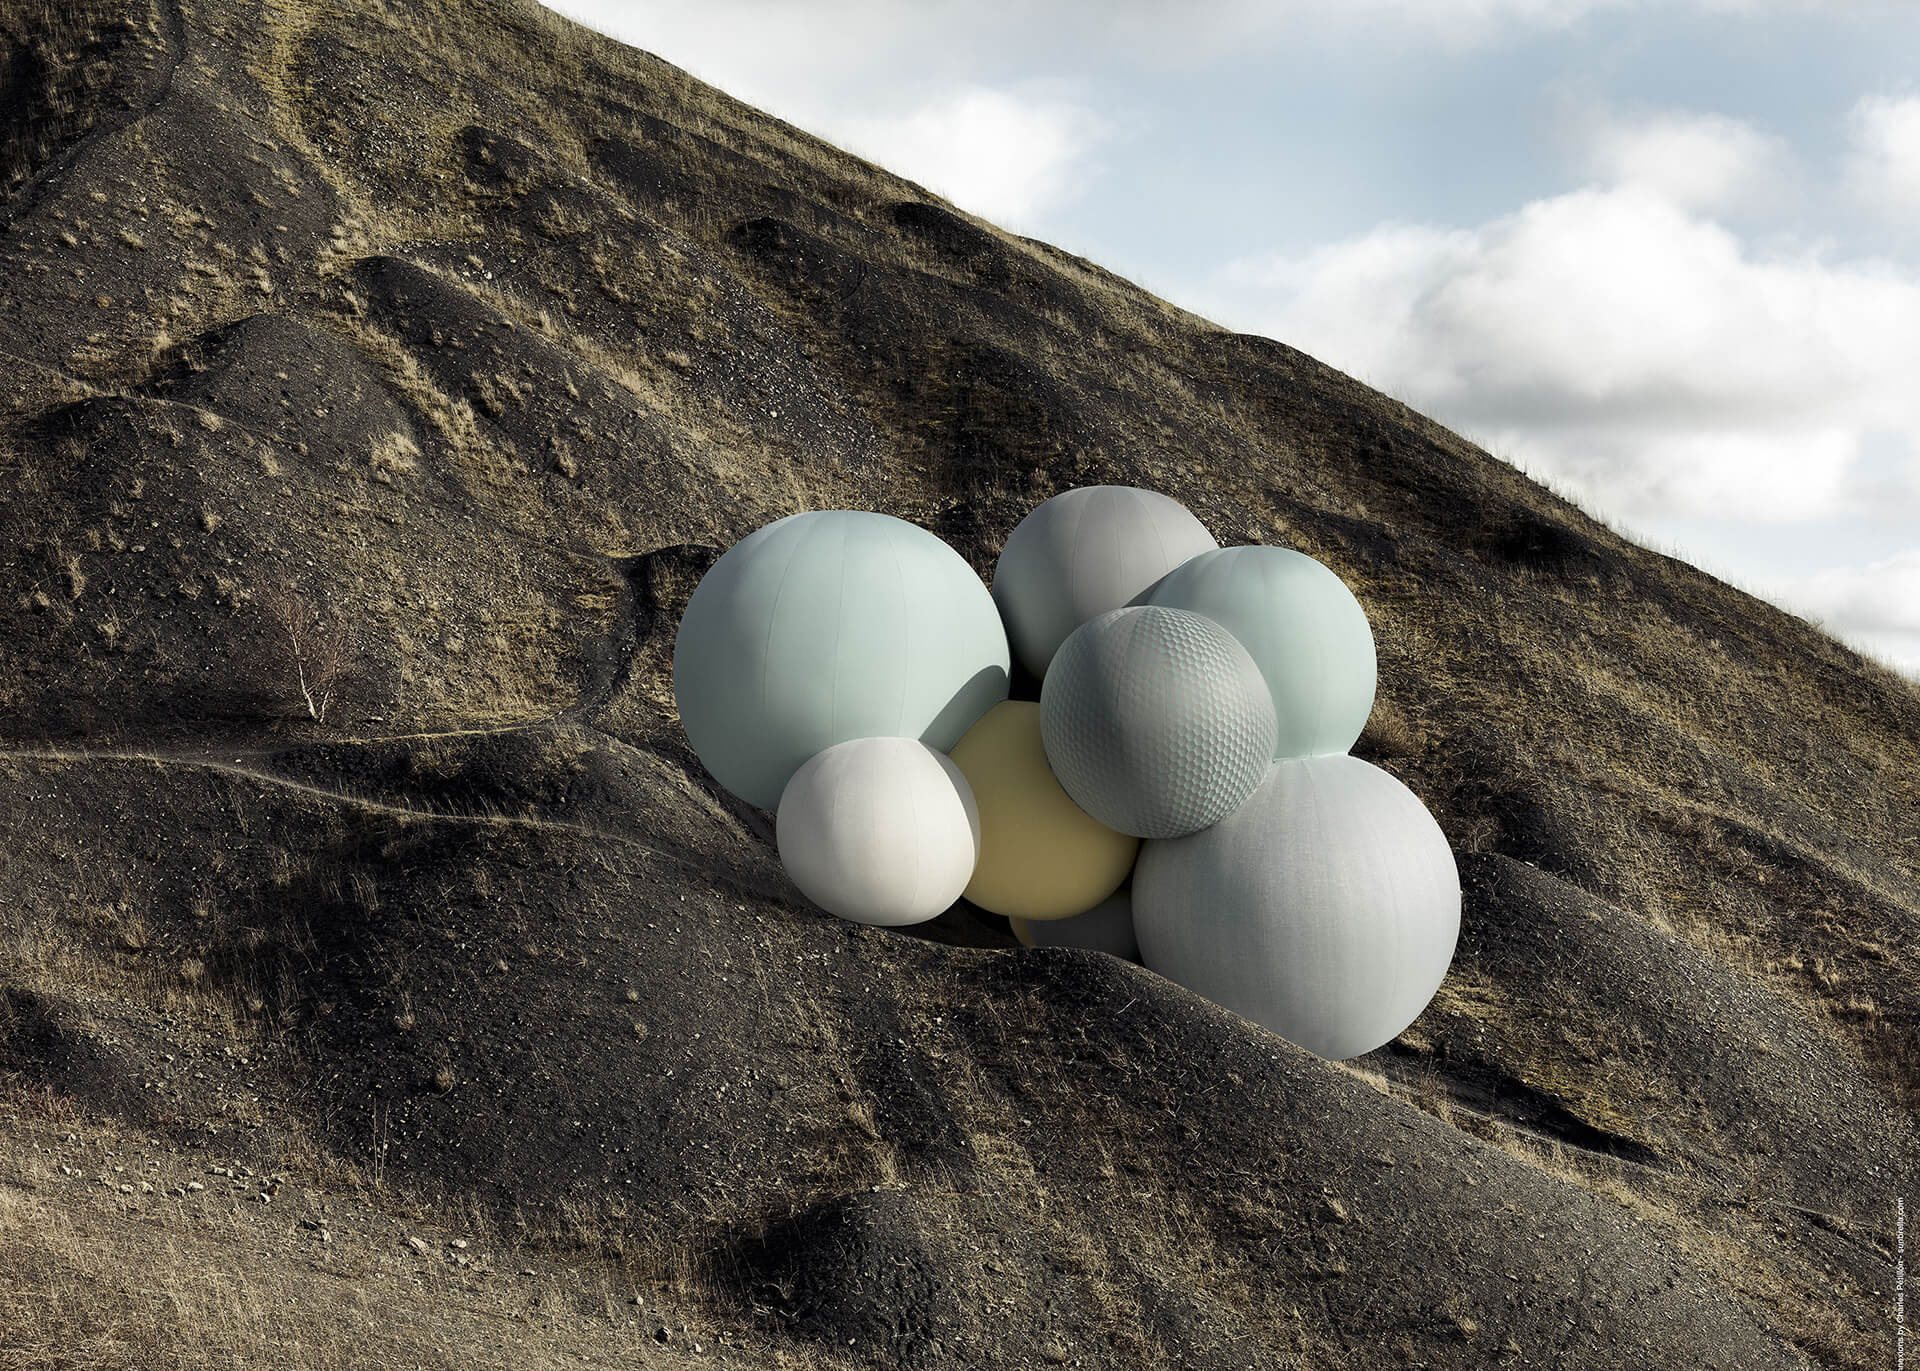 The Sunbrella Connexions Balloons featuring Sunbrella upholstery fabrics sit on a rock cliff.